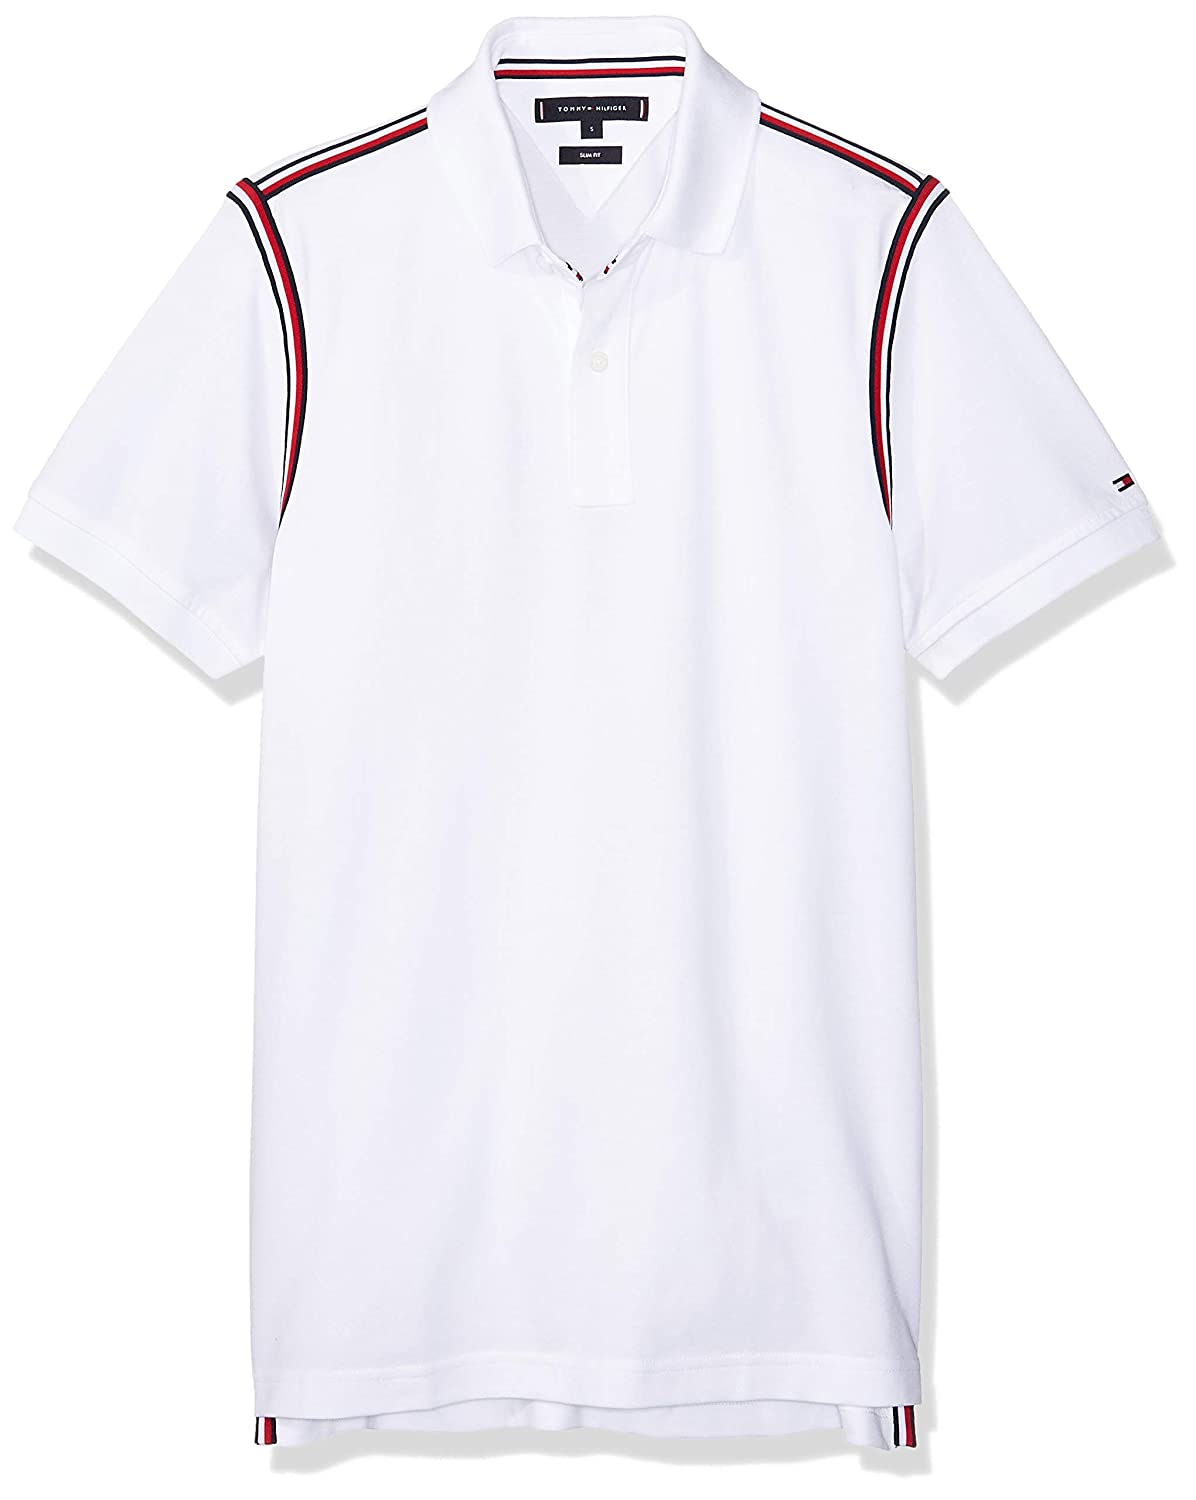 TOMMY HILFIGER Men - Pure cotton slim fit polo shirt - Size XL ...